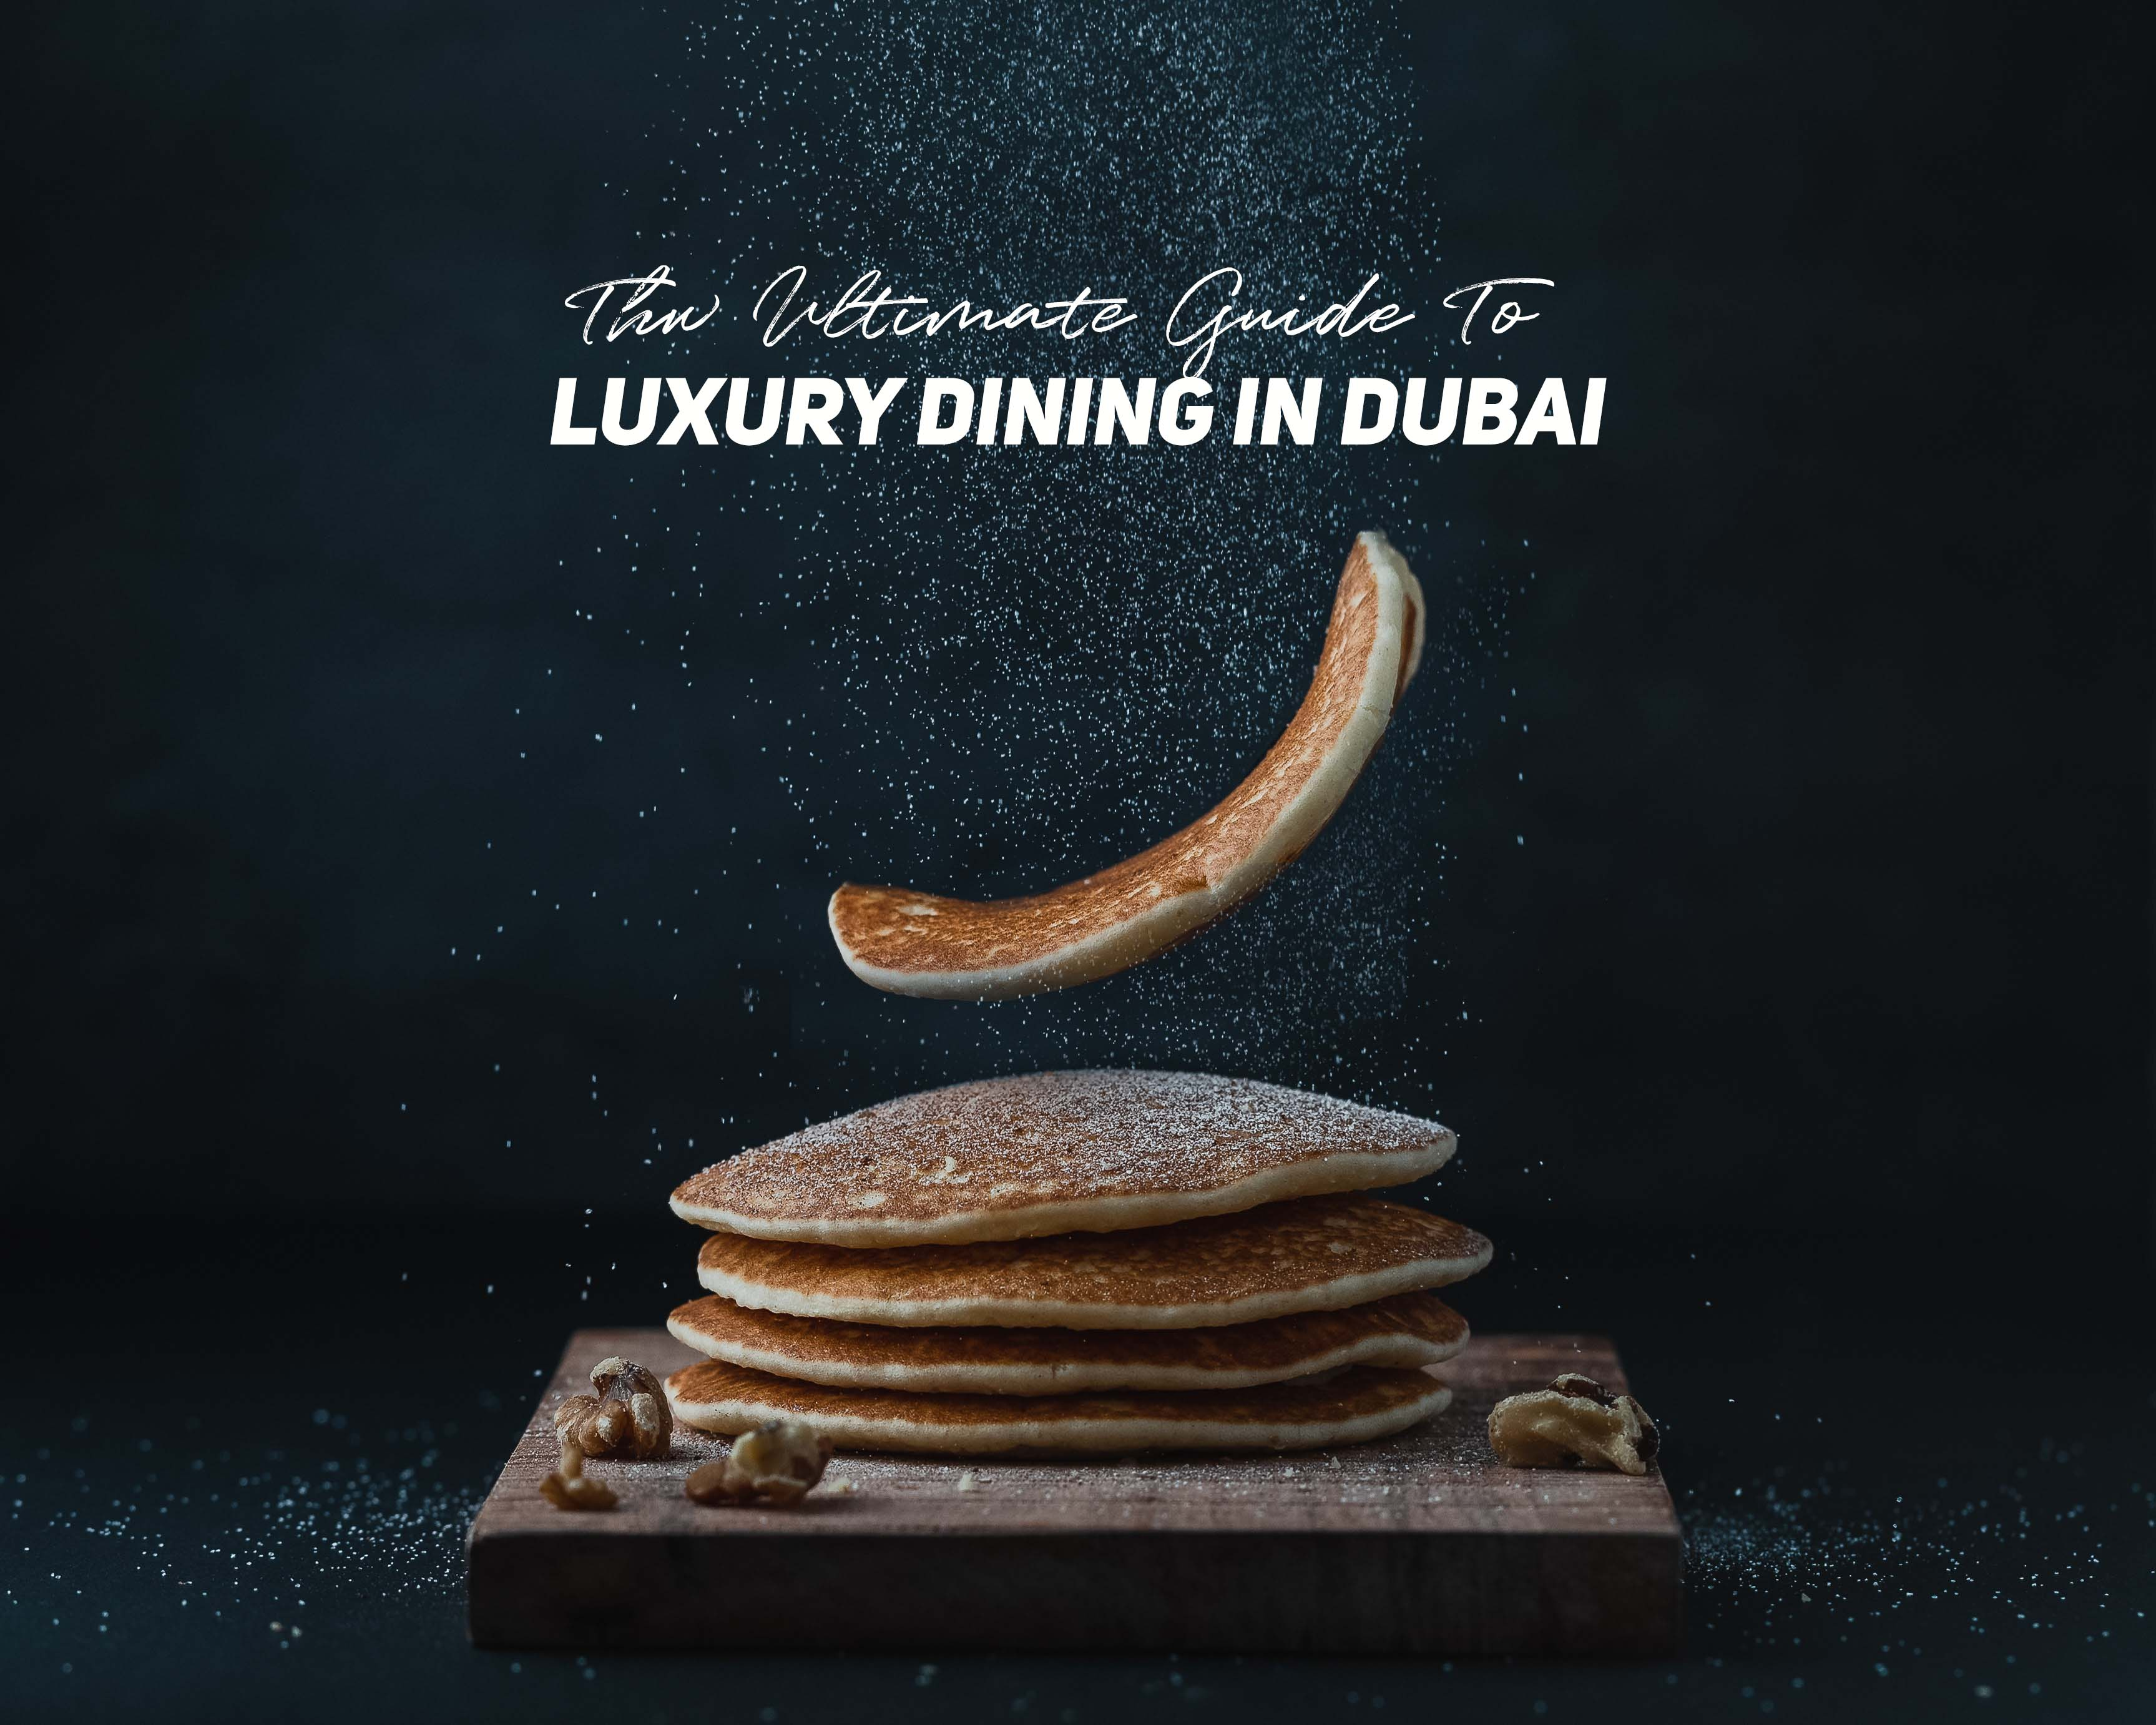 Luxury Dining in Dubai